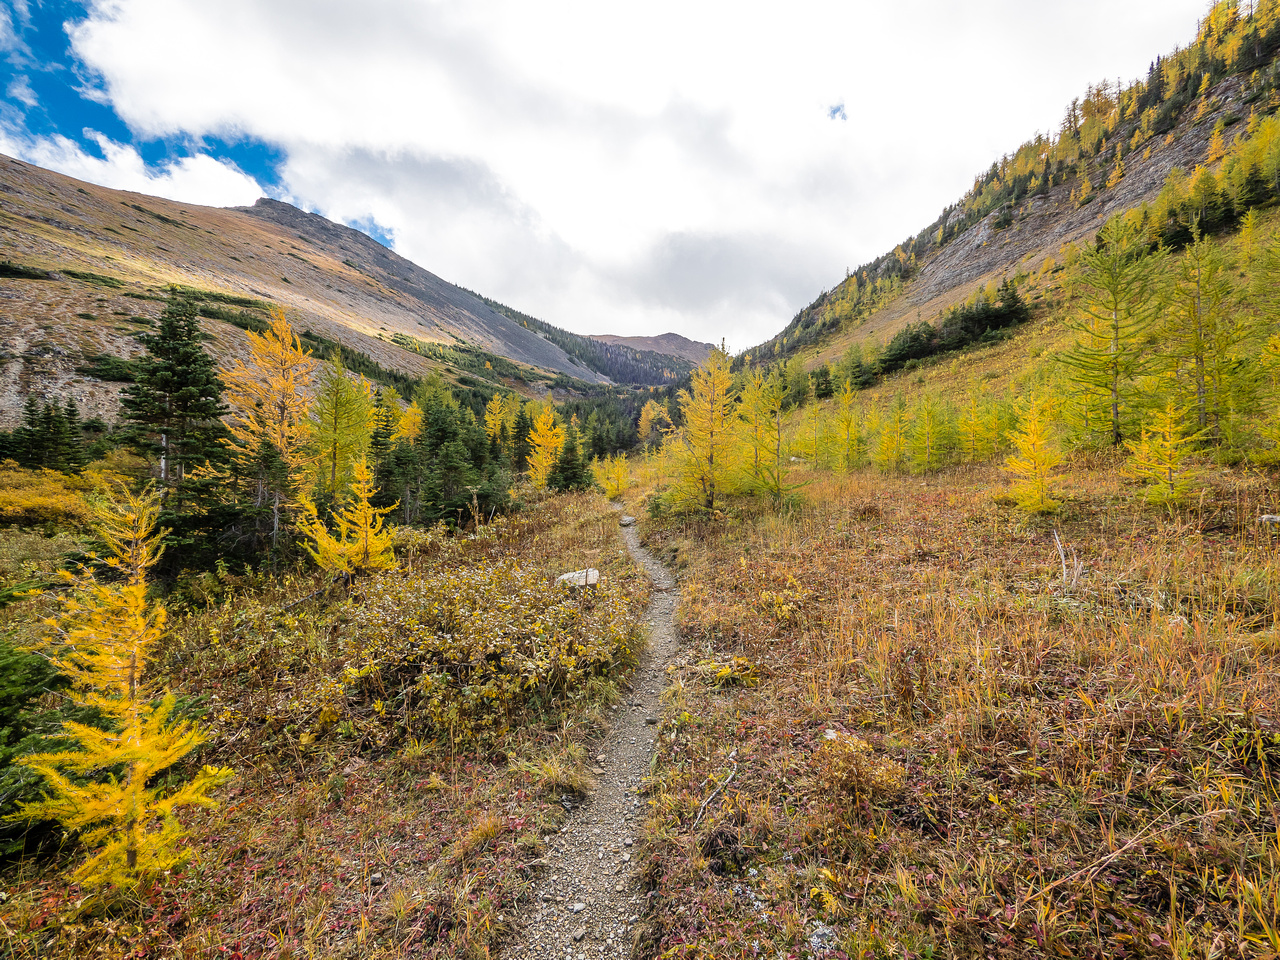 The trail heads through brightly colored larches towards the small headwall between the Upper and Lower Southfork Lakes.